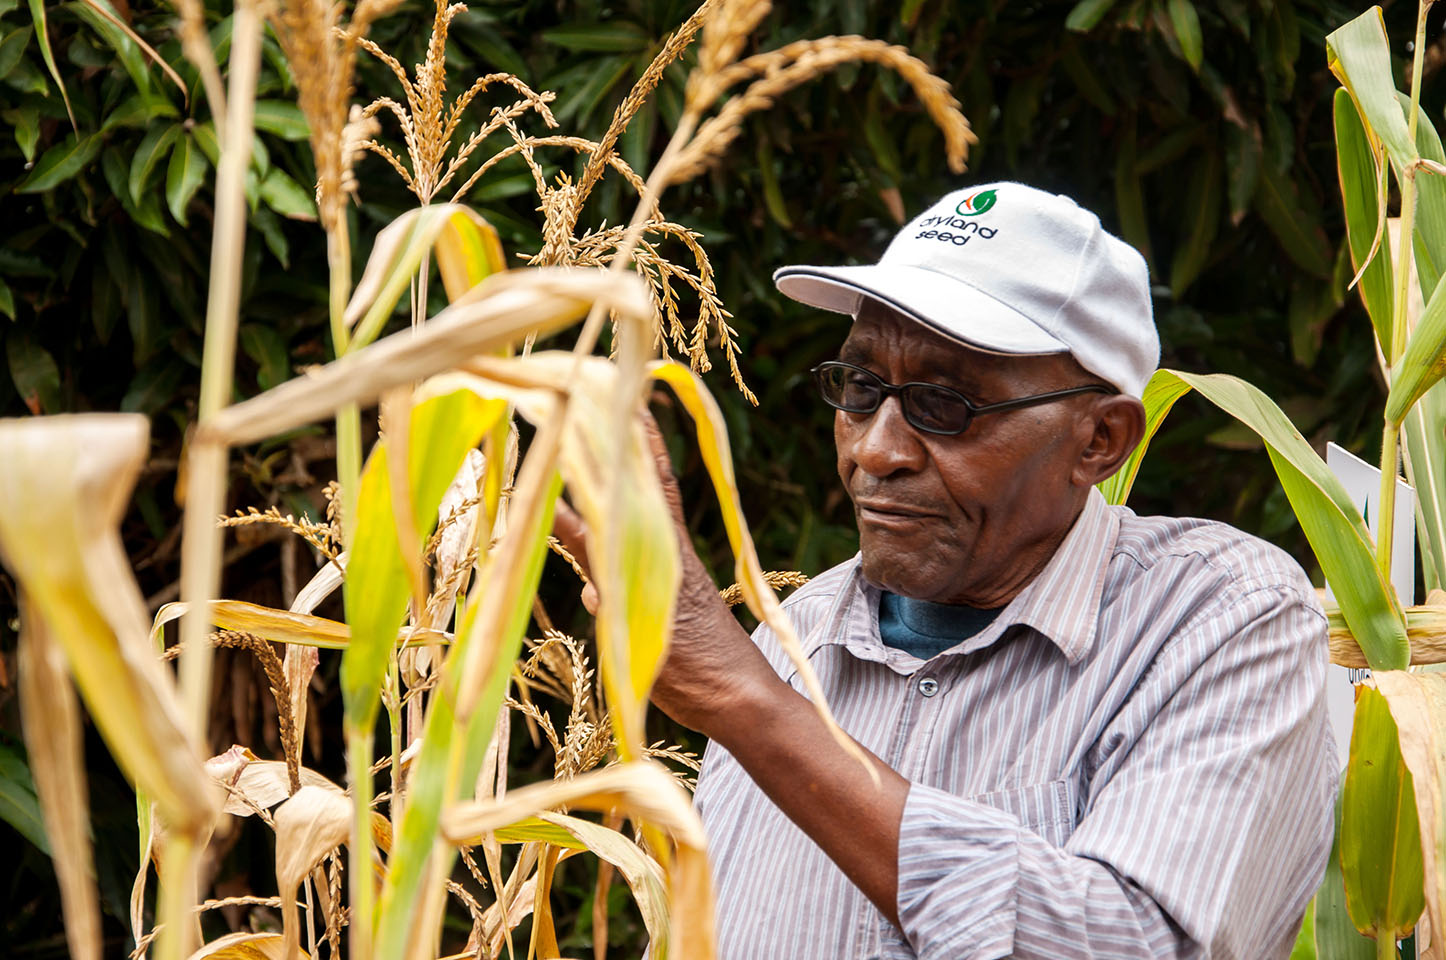 Joseph Mulei on his farm in Machakos County, Kenya, where he planted several drought tolerant hybrid maize varieties including Drought Tego and Sawa (DSL H103). Photo: Brenda Wawa/CIMMYT.